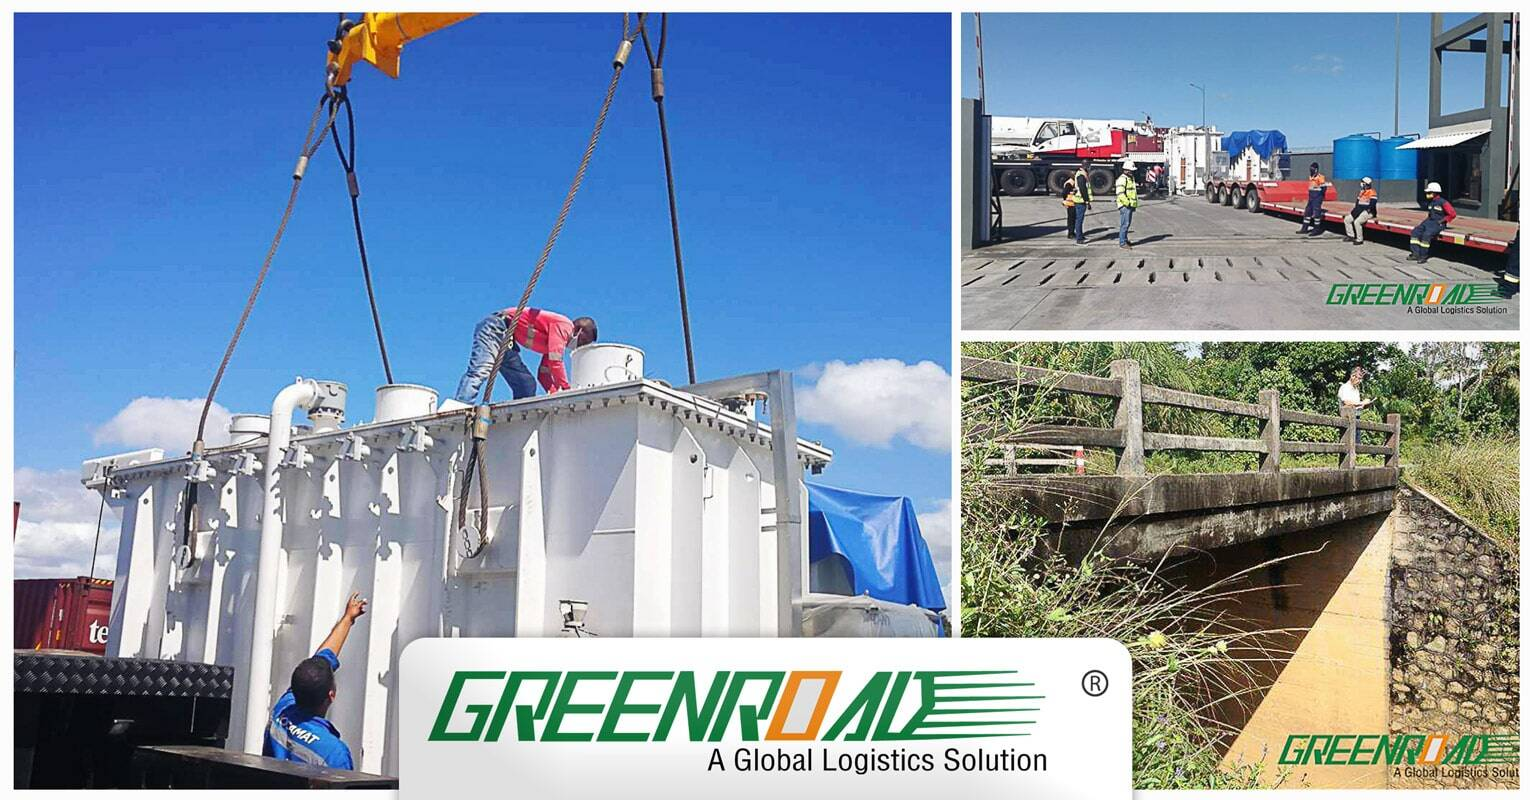 Greenroad Handled Transformers from Shanghai, China to Tamatave, Madagascar